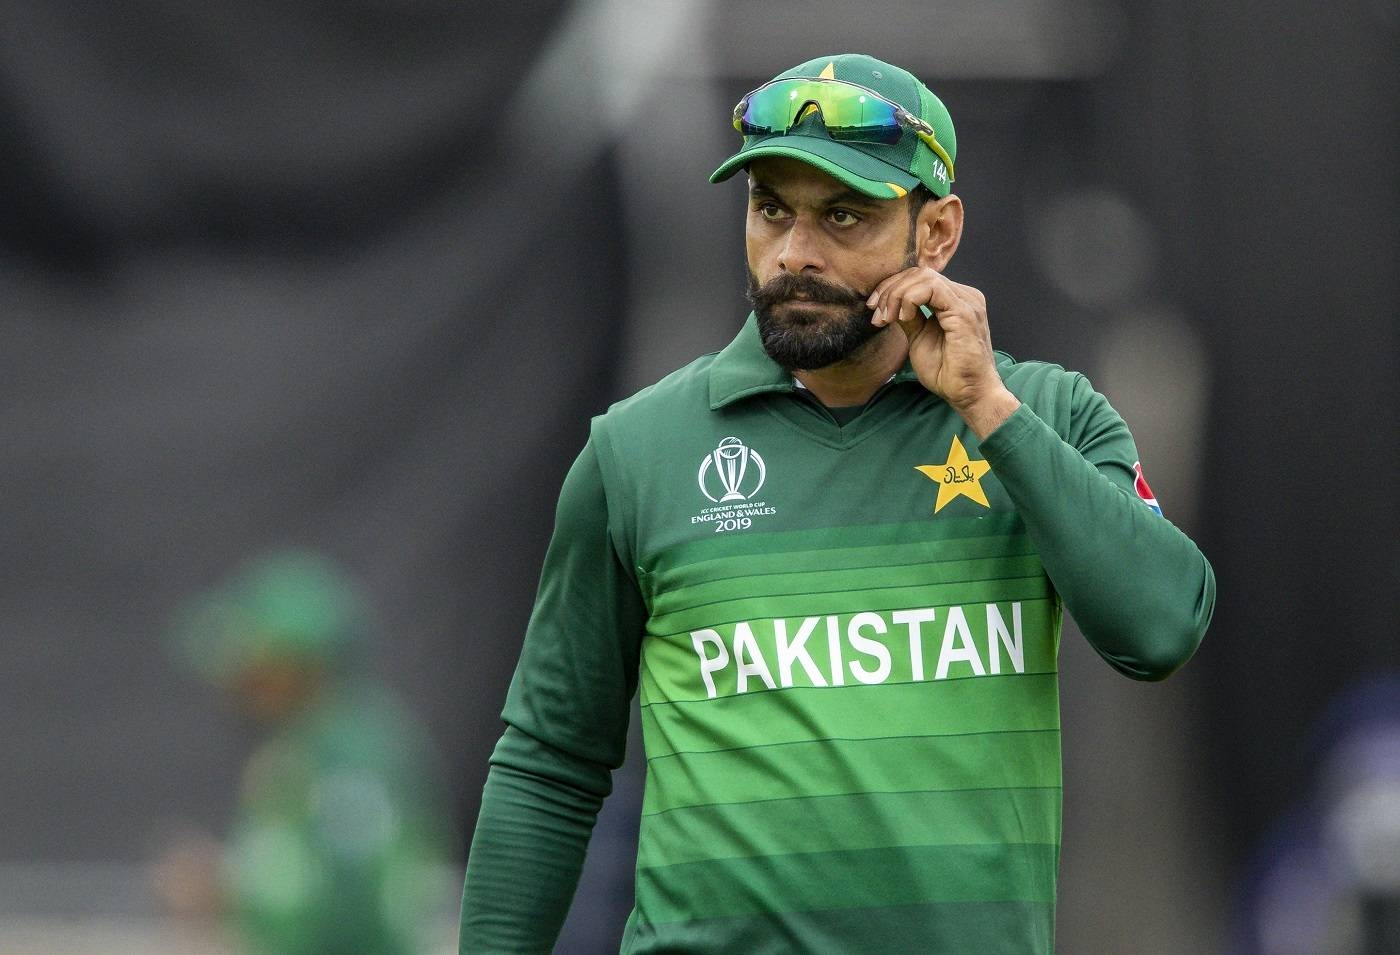 BIRMINGHAM, ENGLAND - JUNE 26: Mohammad Hafeez of Pakistan tweaks his moustache during the Group Stage match of the ICC Cricket World Cup 2019 between New Zealand and Pakistan at Edgbaston on June 26, 2019 in Birmingham, England. (Photo by Andy Kearns/Getty Images)